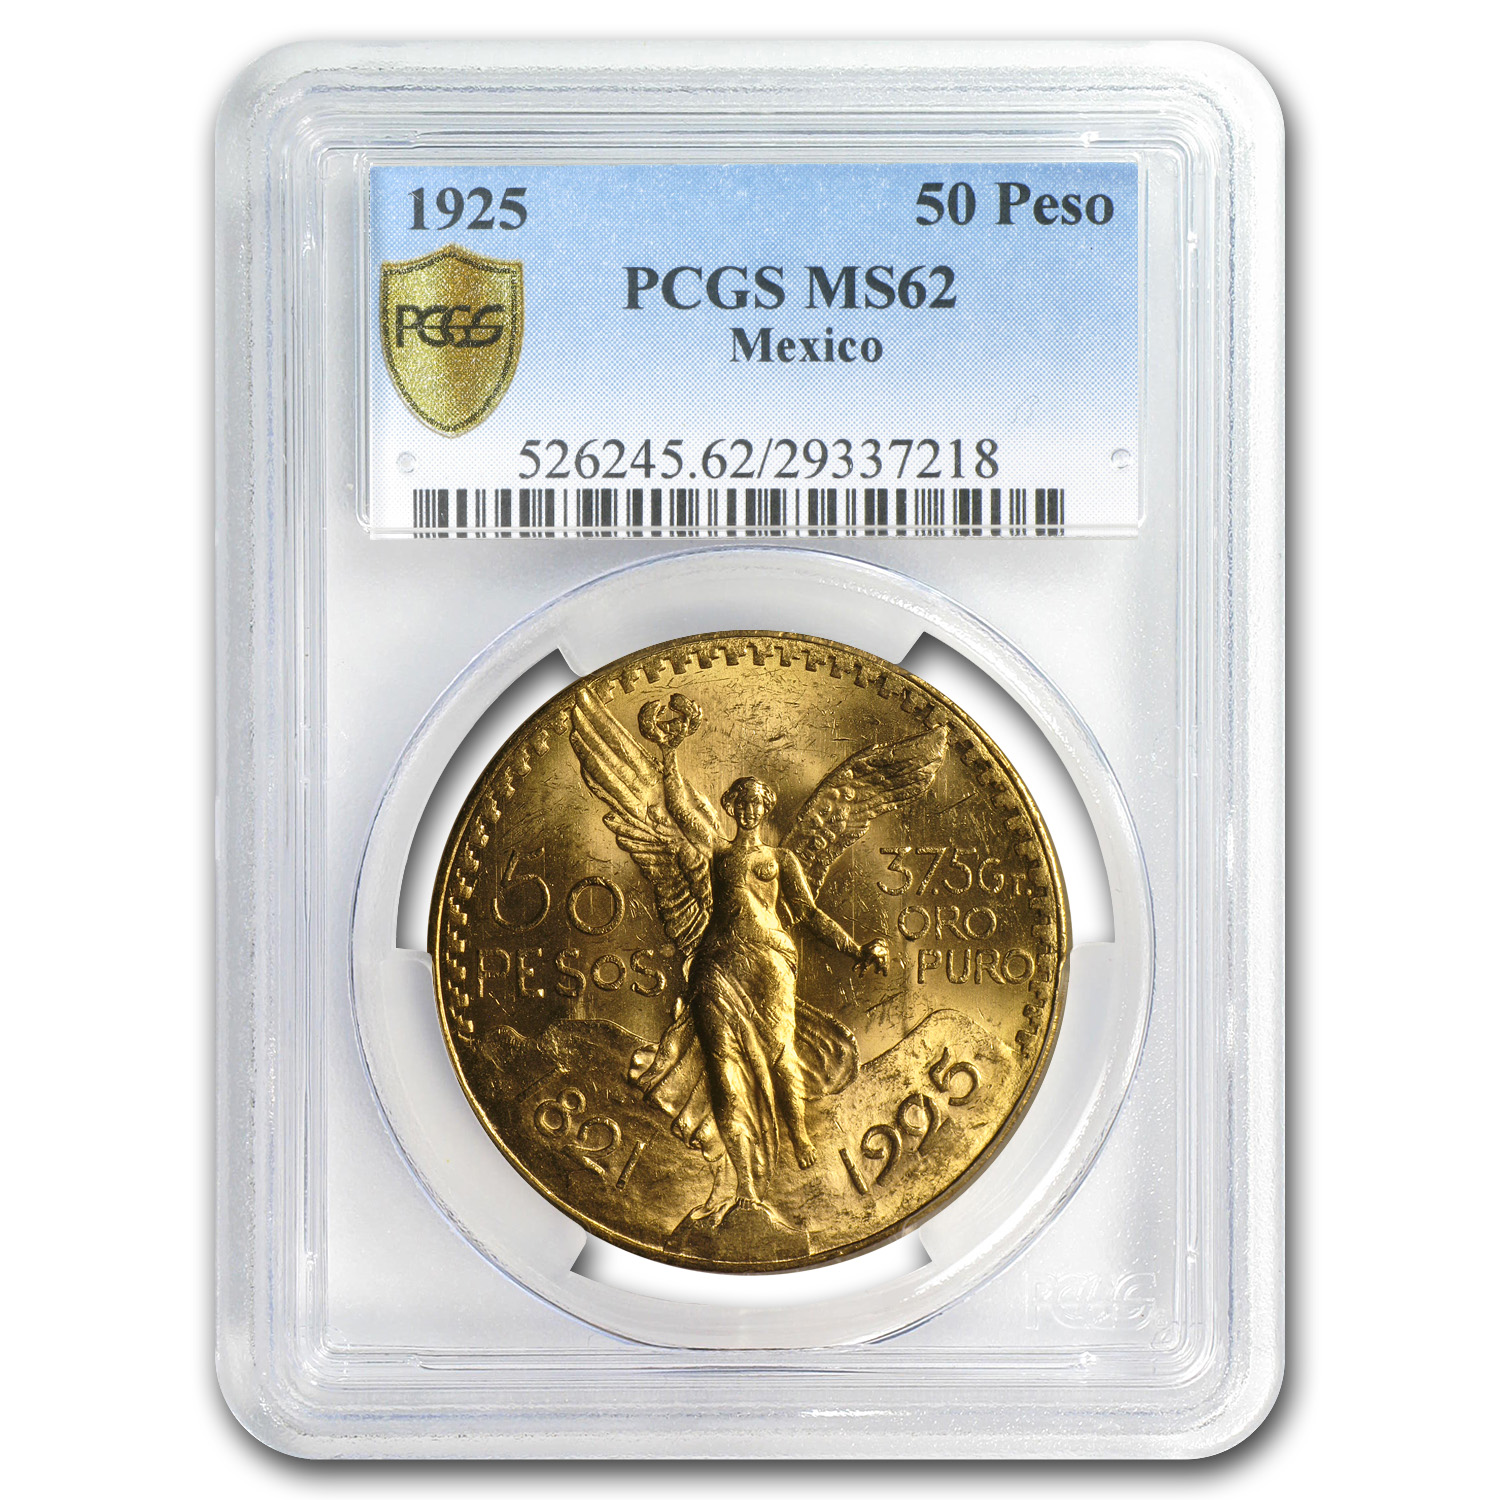 Mexico 1925 50 Pesos Gold Coin - MS-62 PCGS (Secure Plus!)